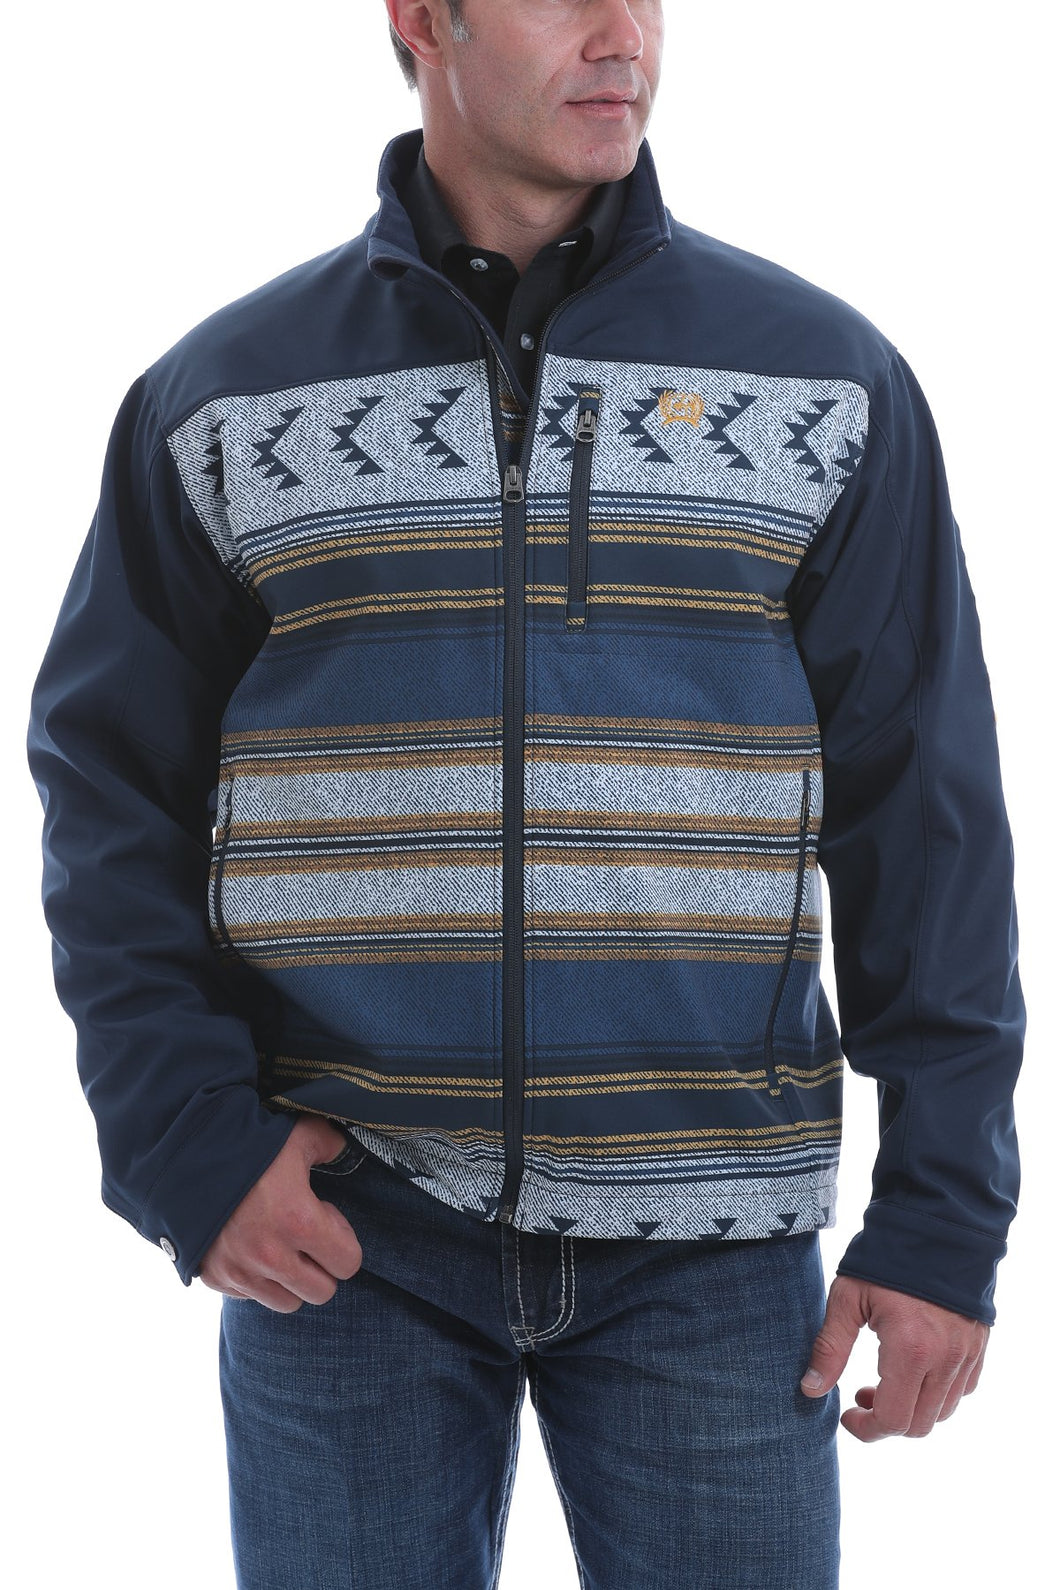 MENS CINCH COLOR BLOCKED SOUTHWESTERN PRINT BONDED JACKET - NAVY